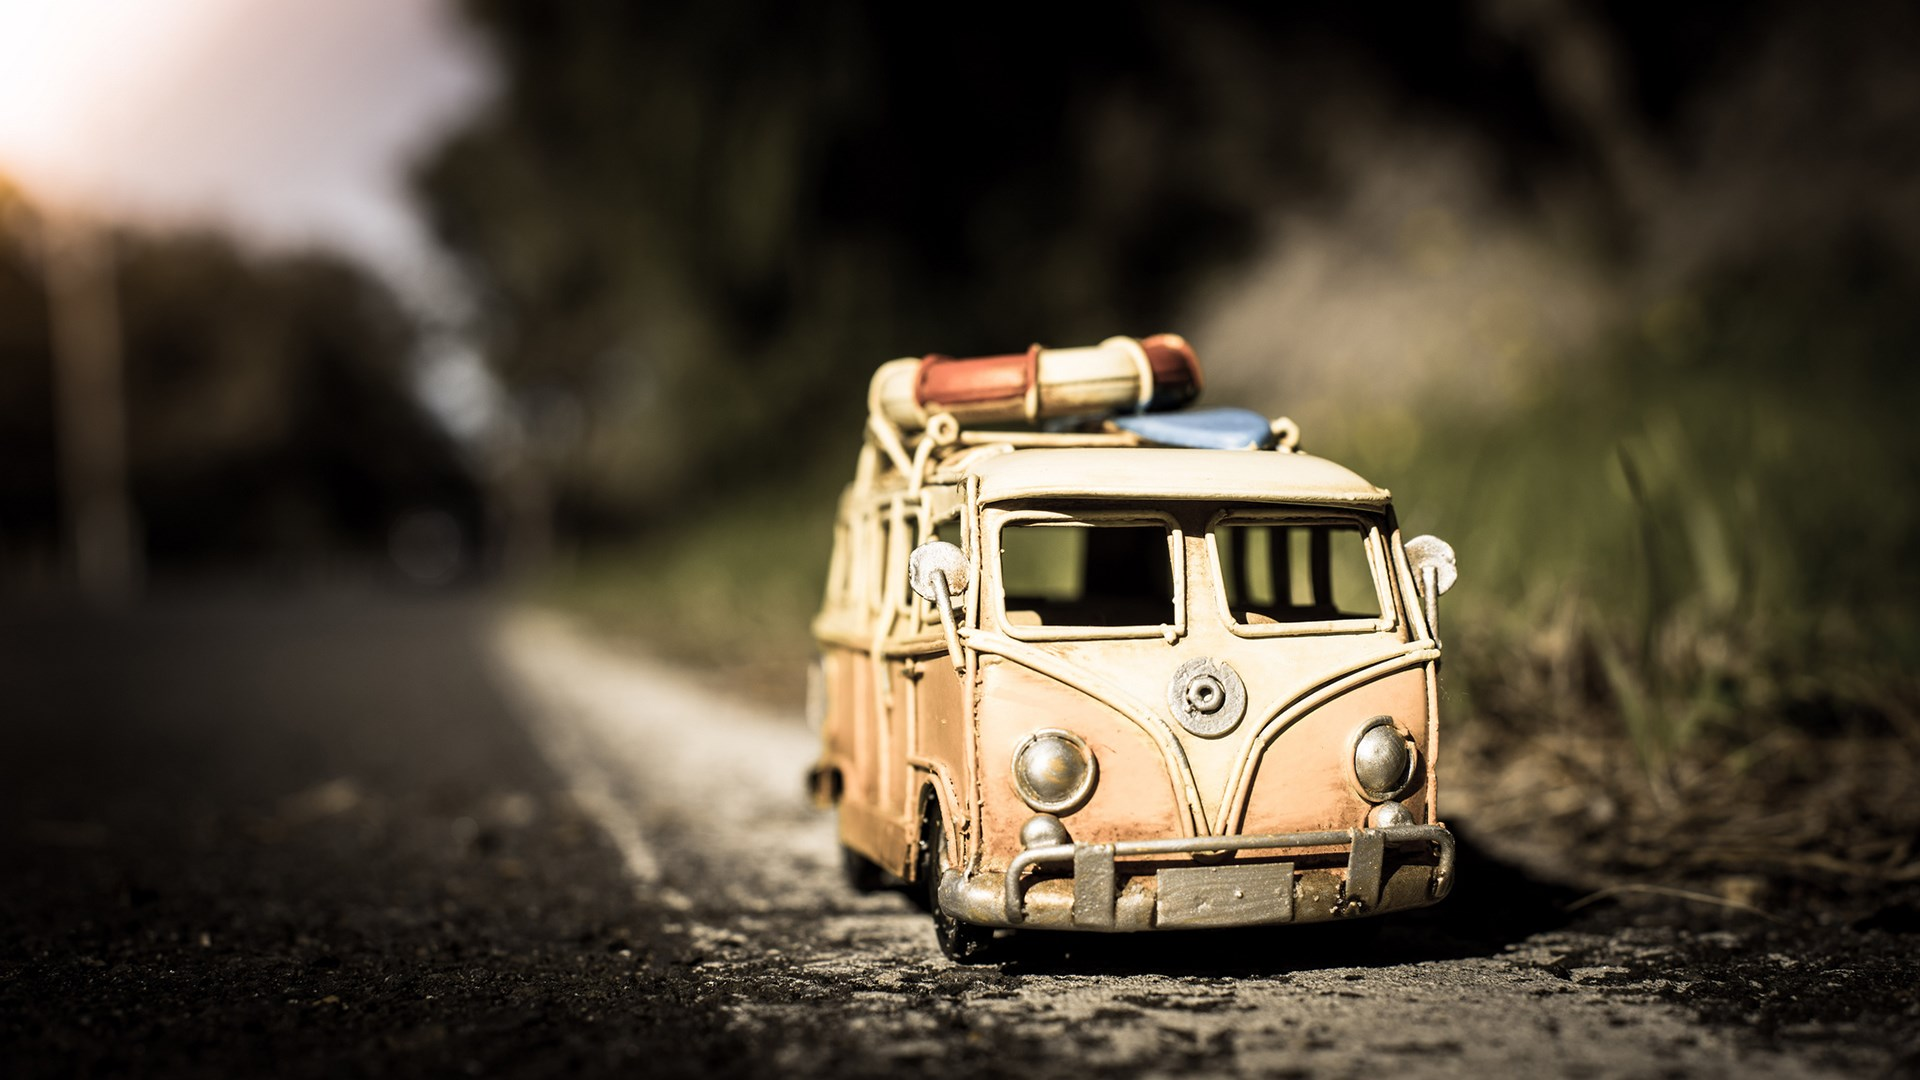 Cute Volkswagen Toy Wallpaper